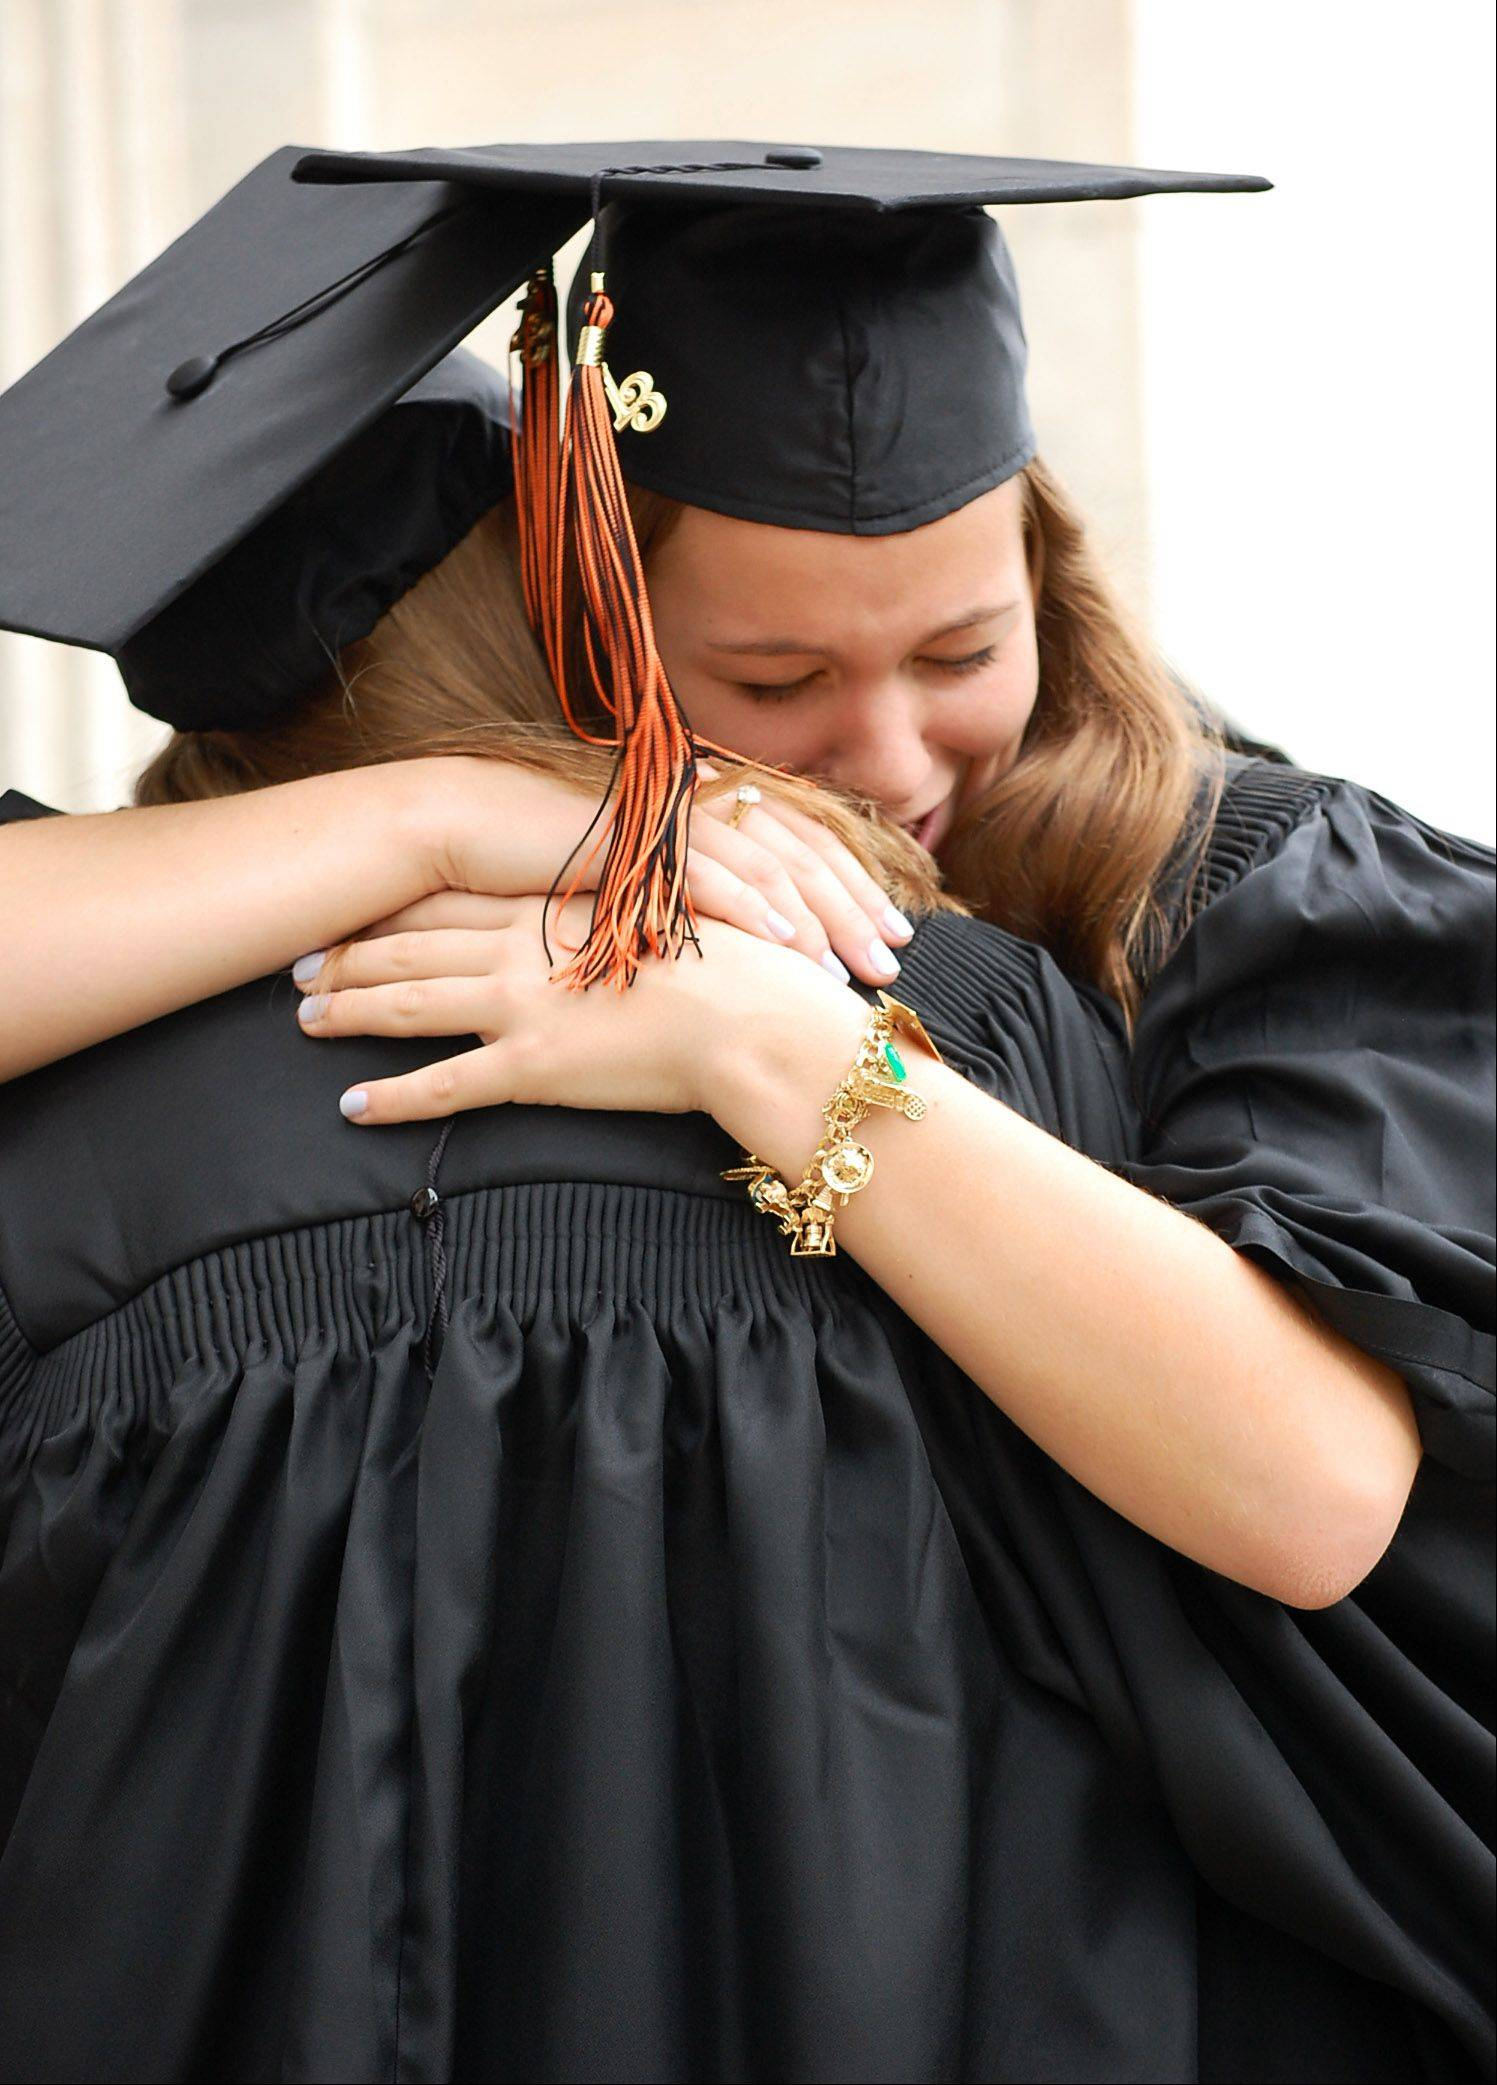 Graduates Shayna Oriold of St. Charles and Sedona Georgescu of Barrington embrace before the Elgin Academy High School graduation ceremony Saturday, June 1st at Elgin Academy in Elgin.